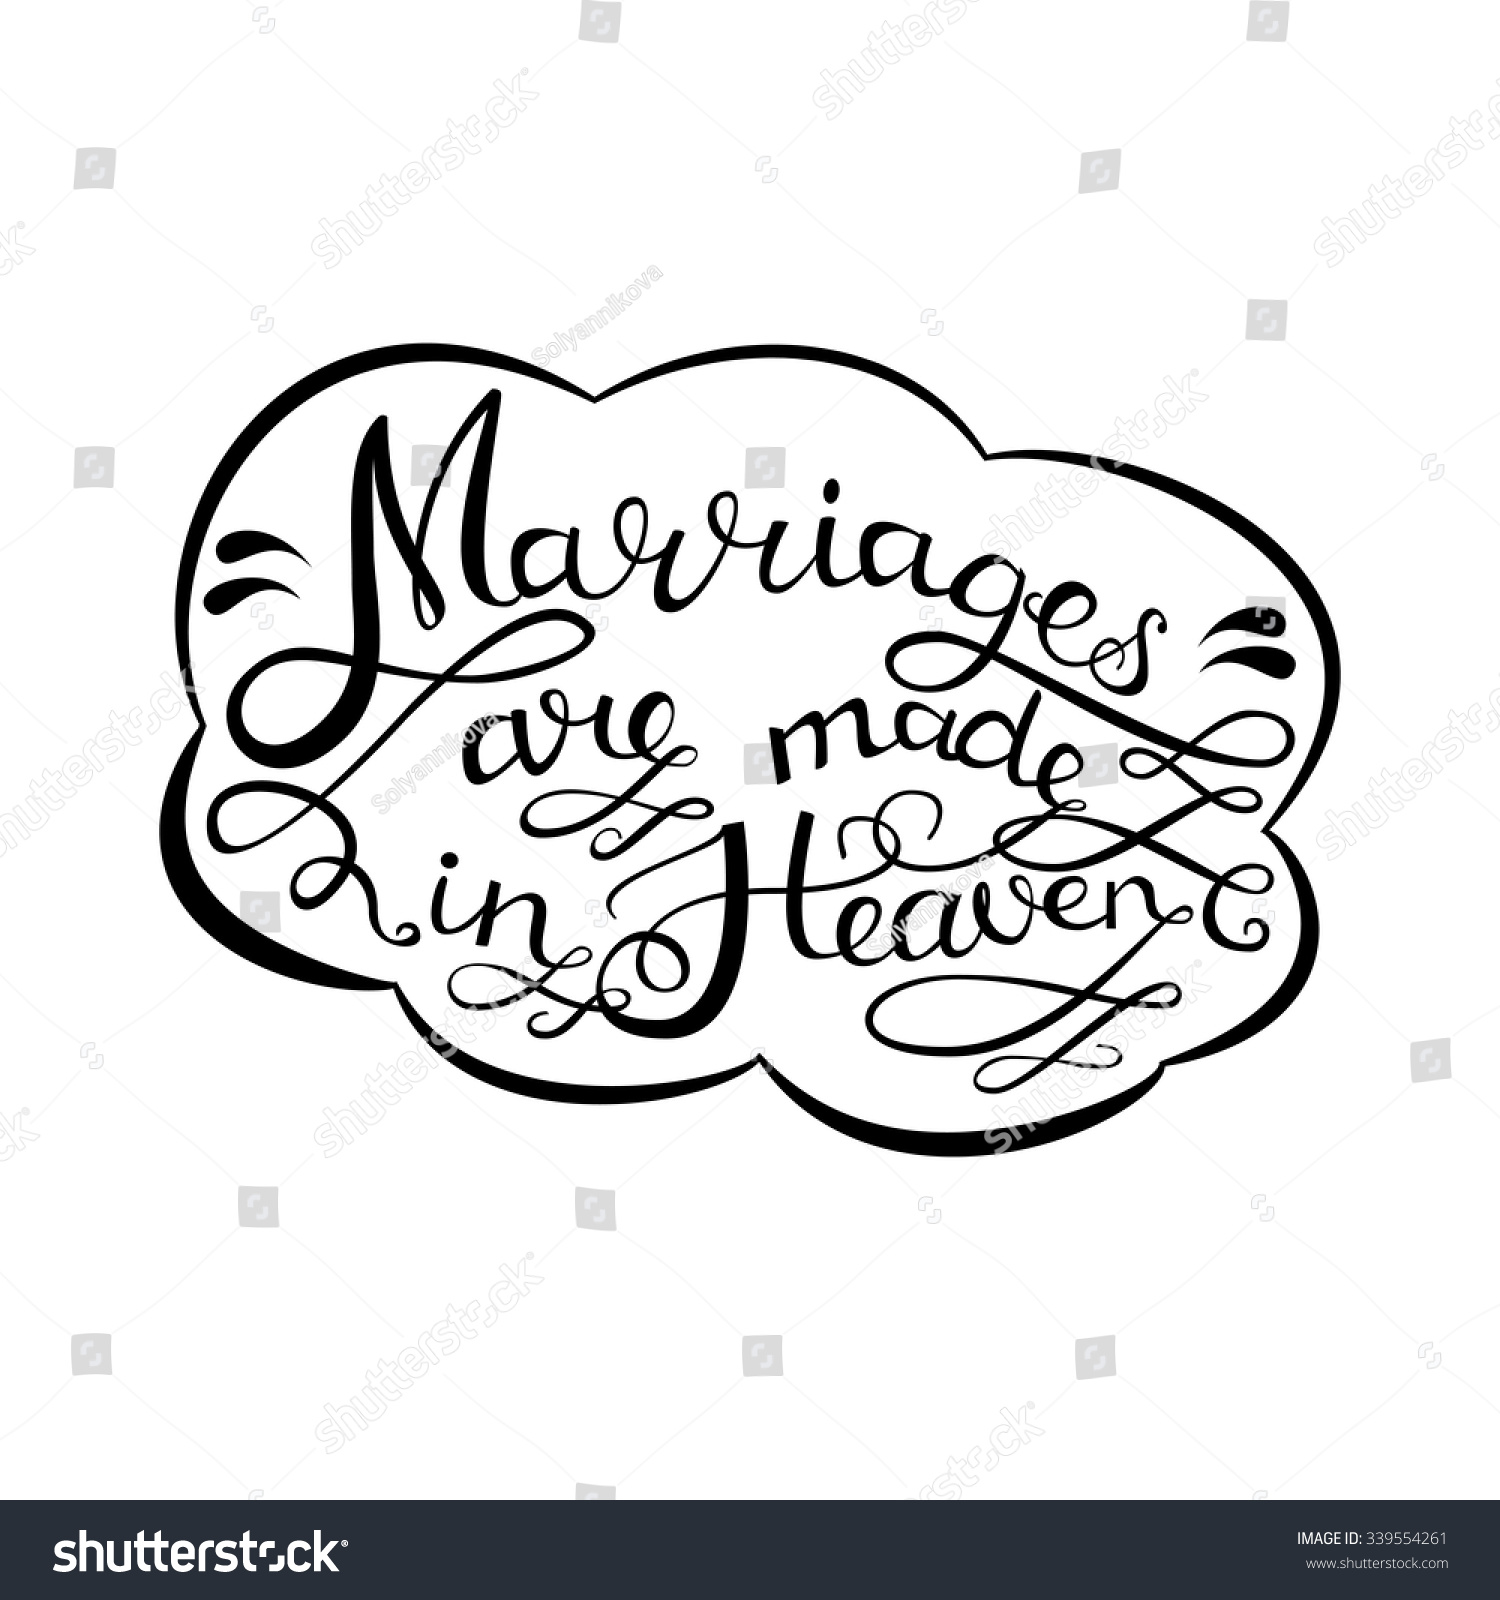 Marriages Made Heaven Handdrawn Romantic Quotes Stock Vector